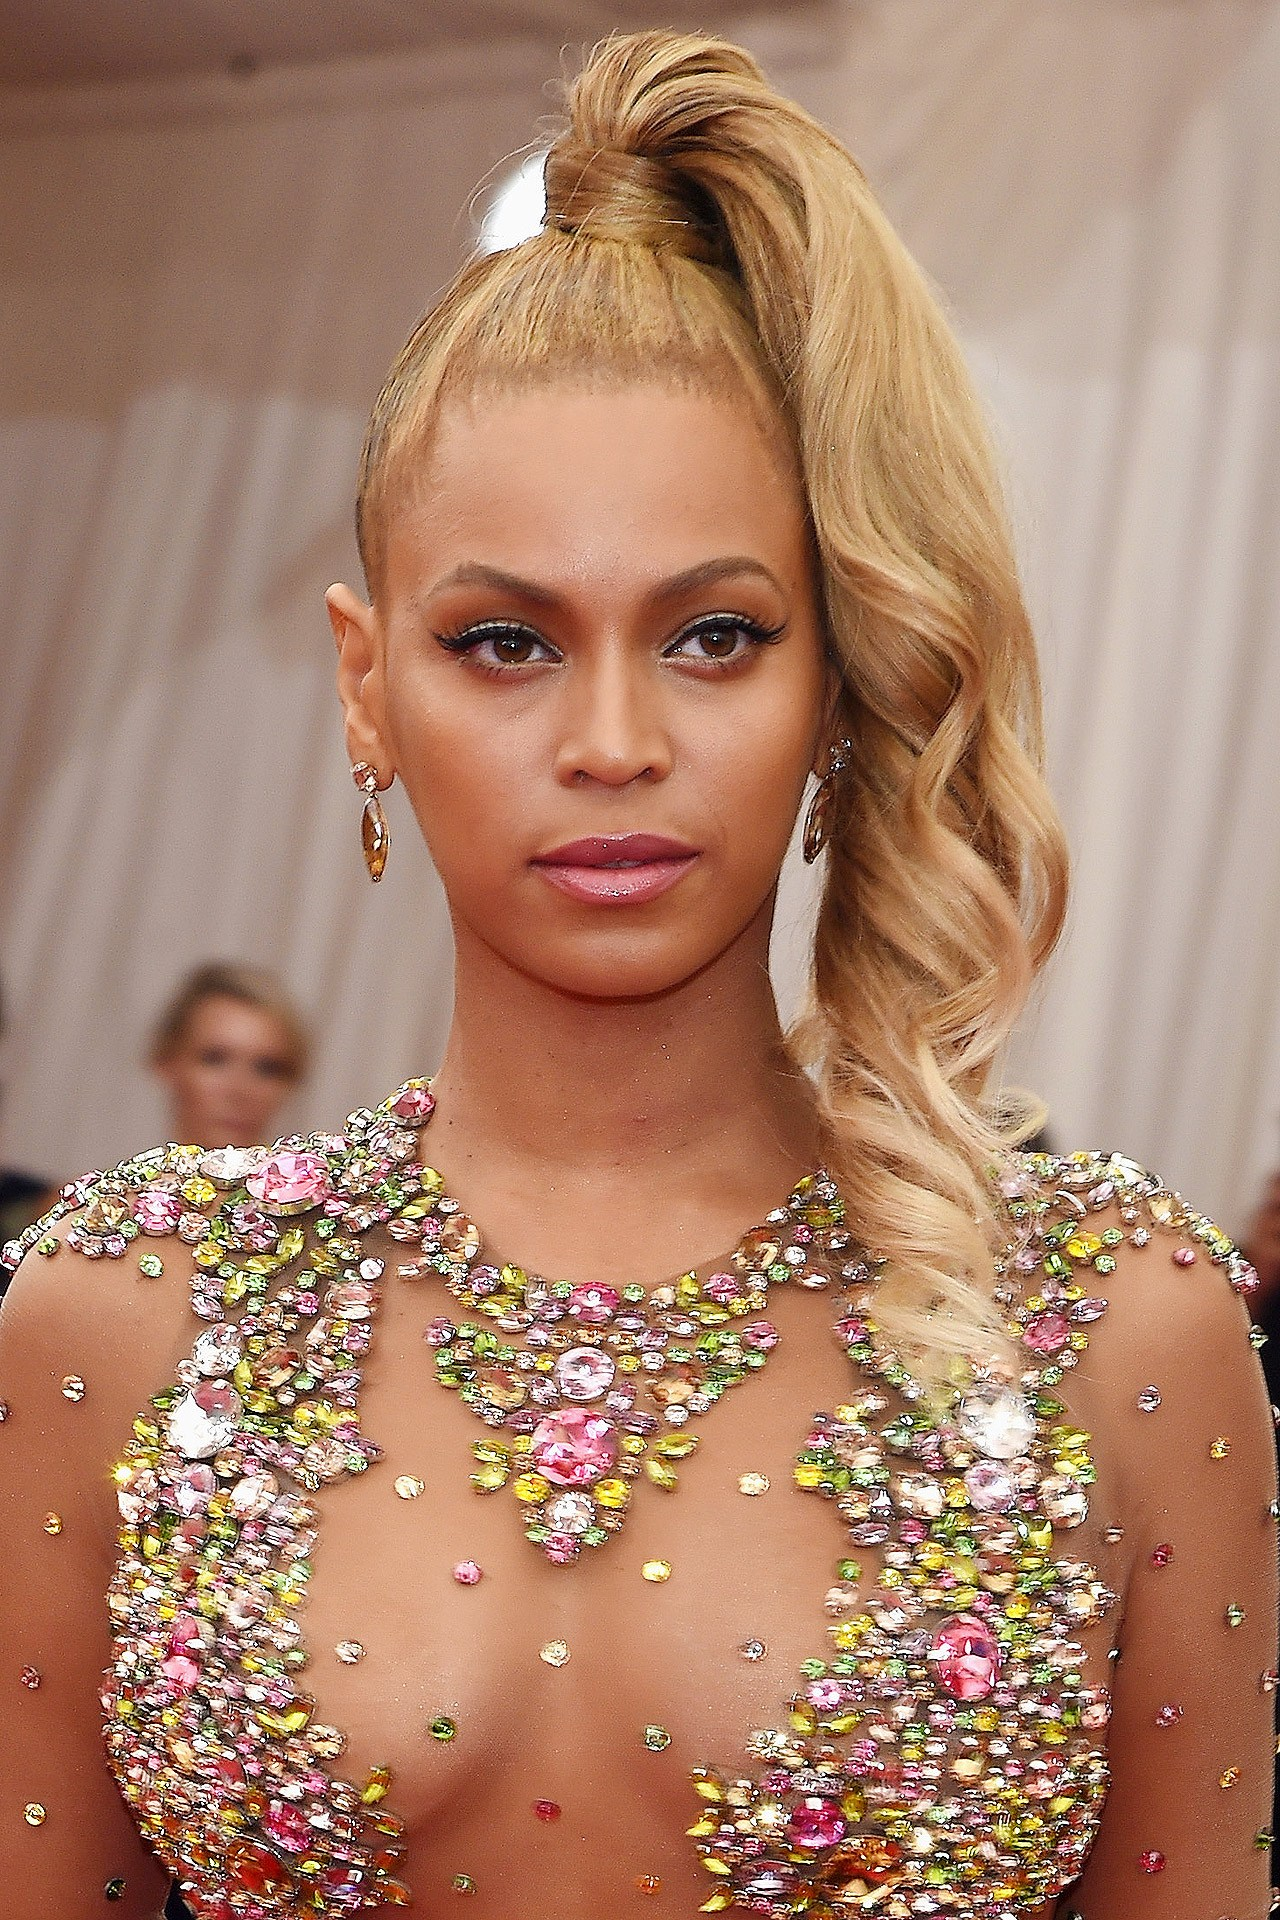 4. Beyonce's High Ponytail